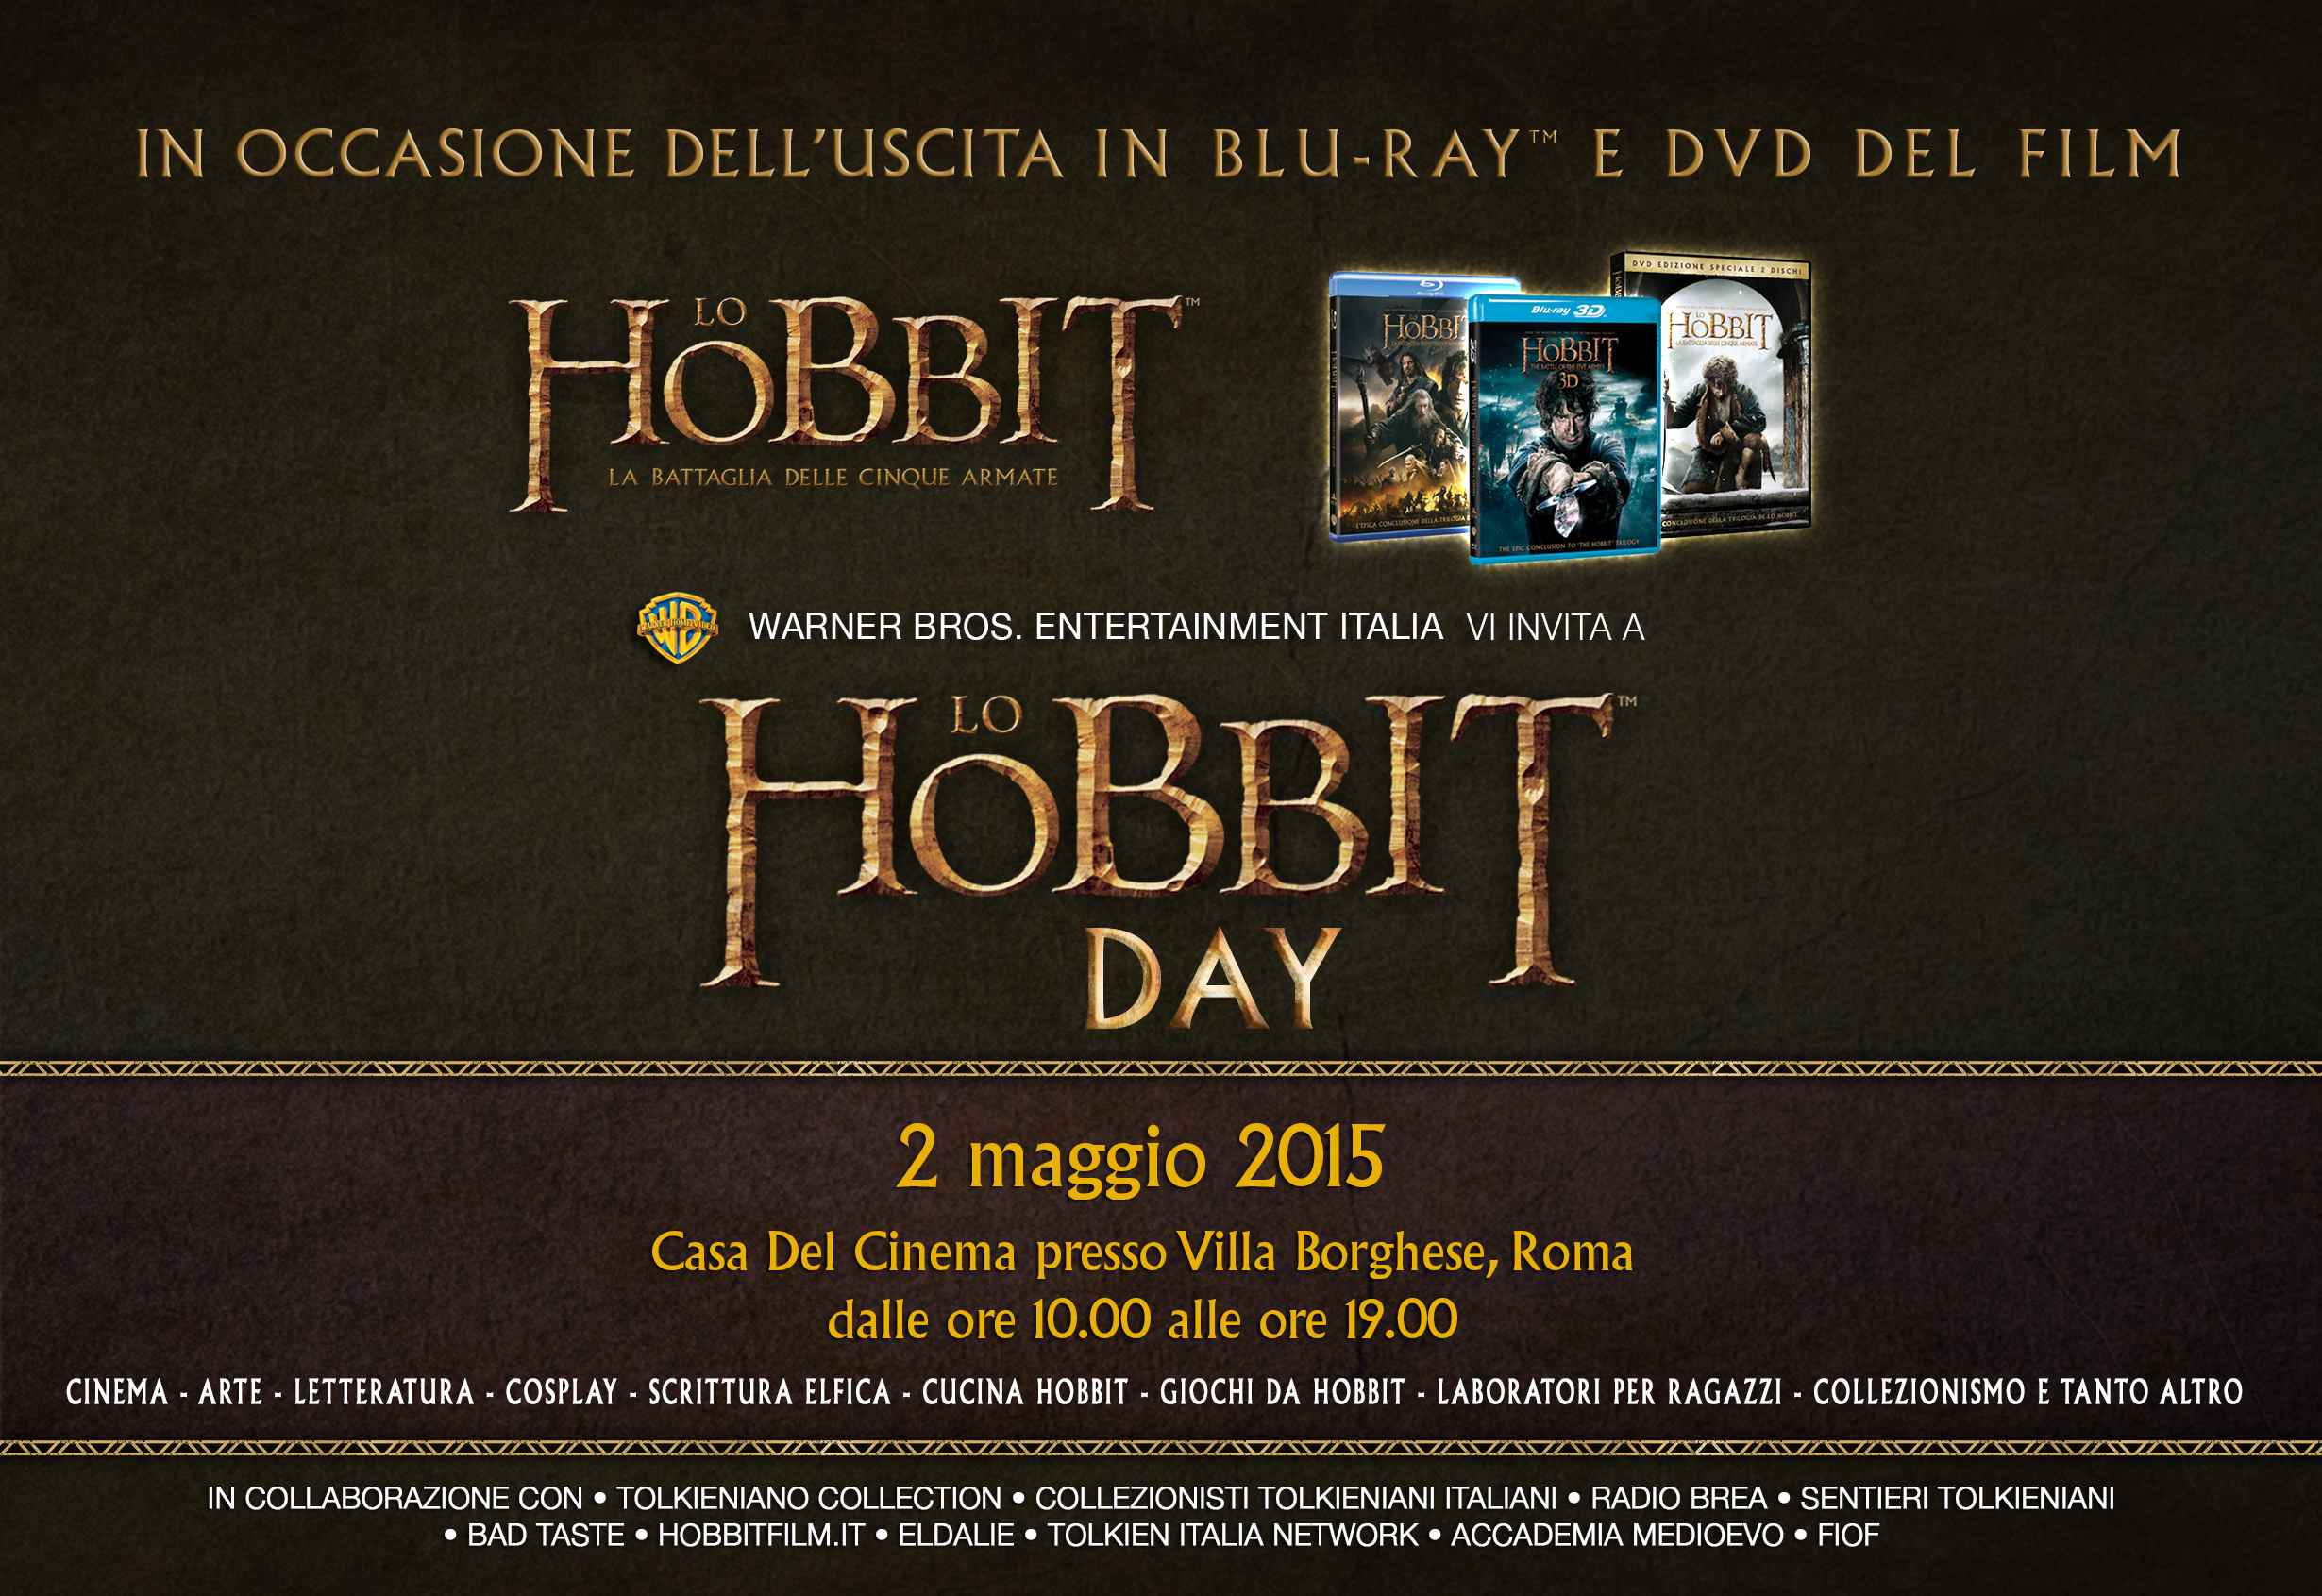 invito lo hobbit day 2015